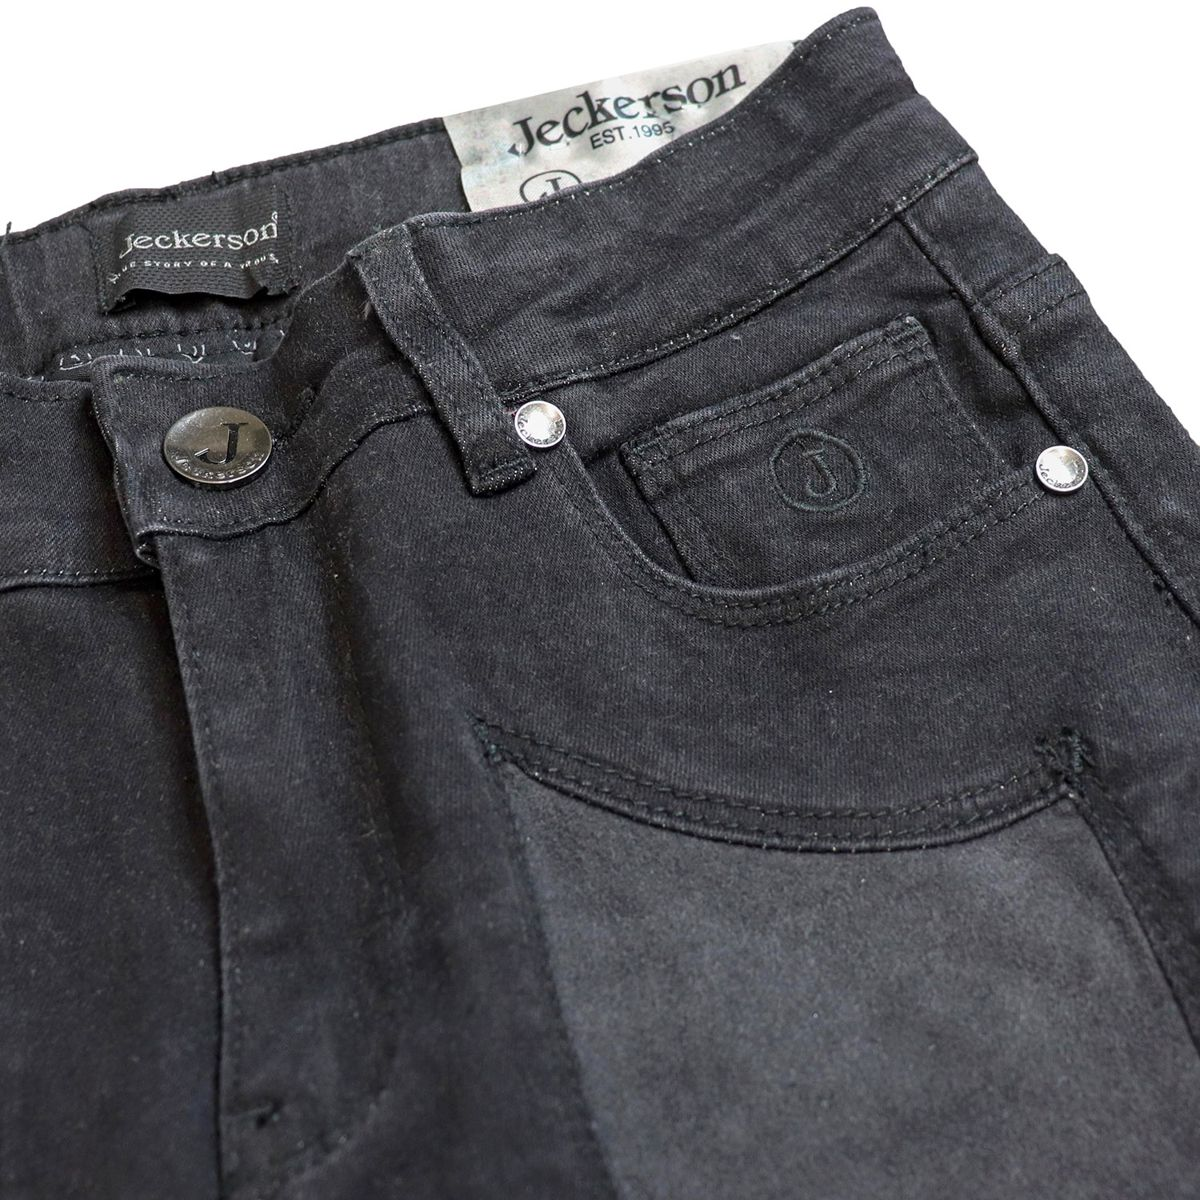 5-pocket jeans in black denim with alcantara patches Black denim Jeckerson